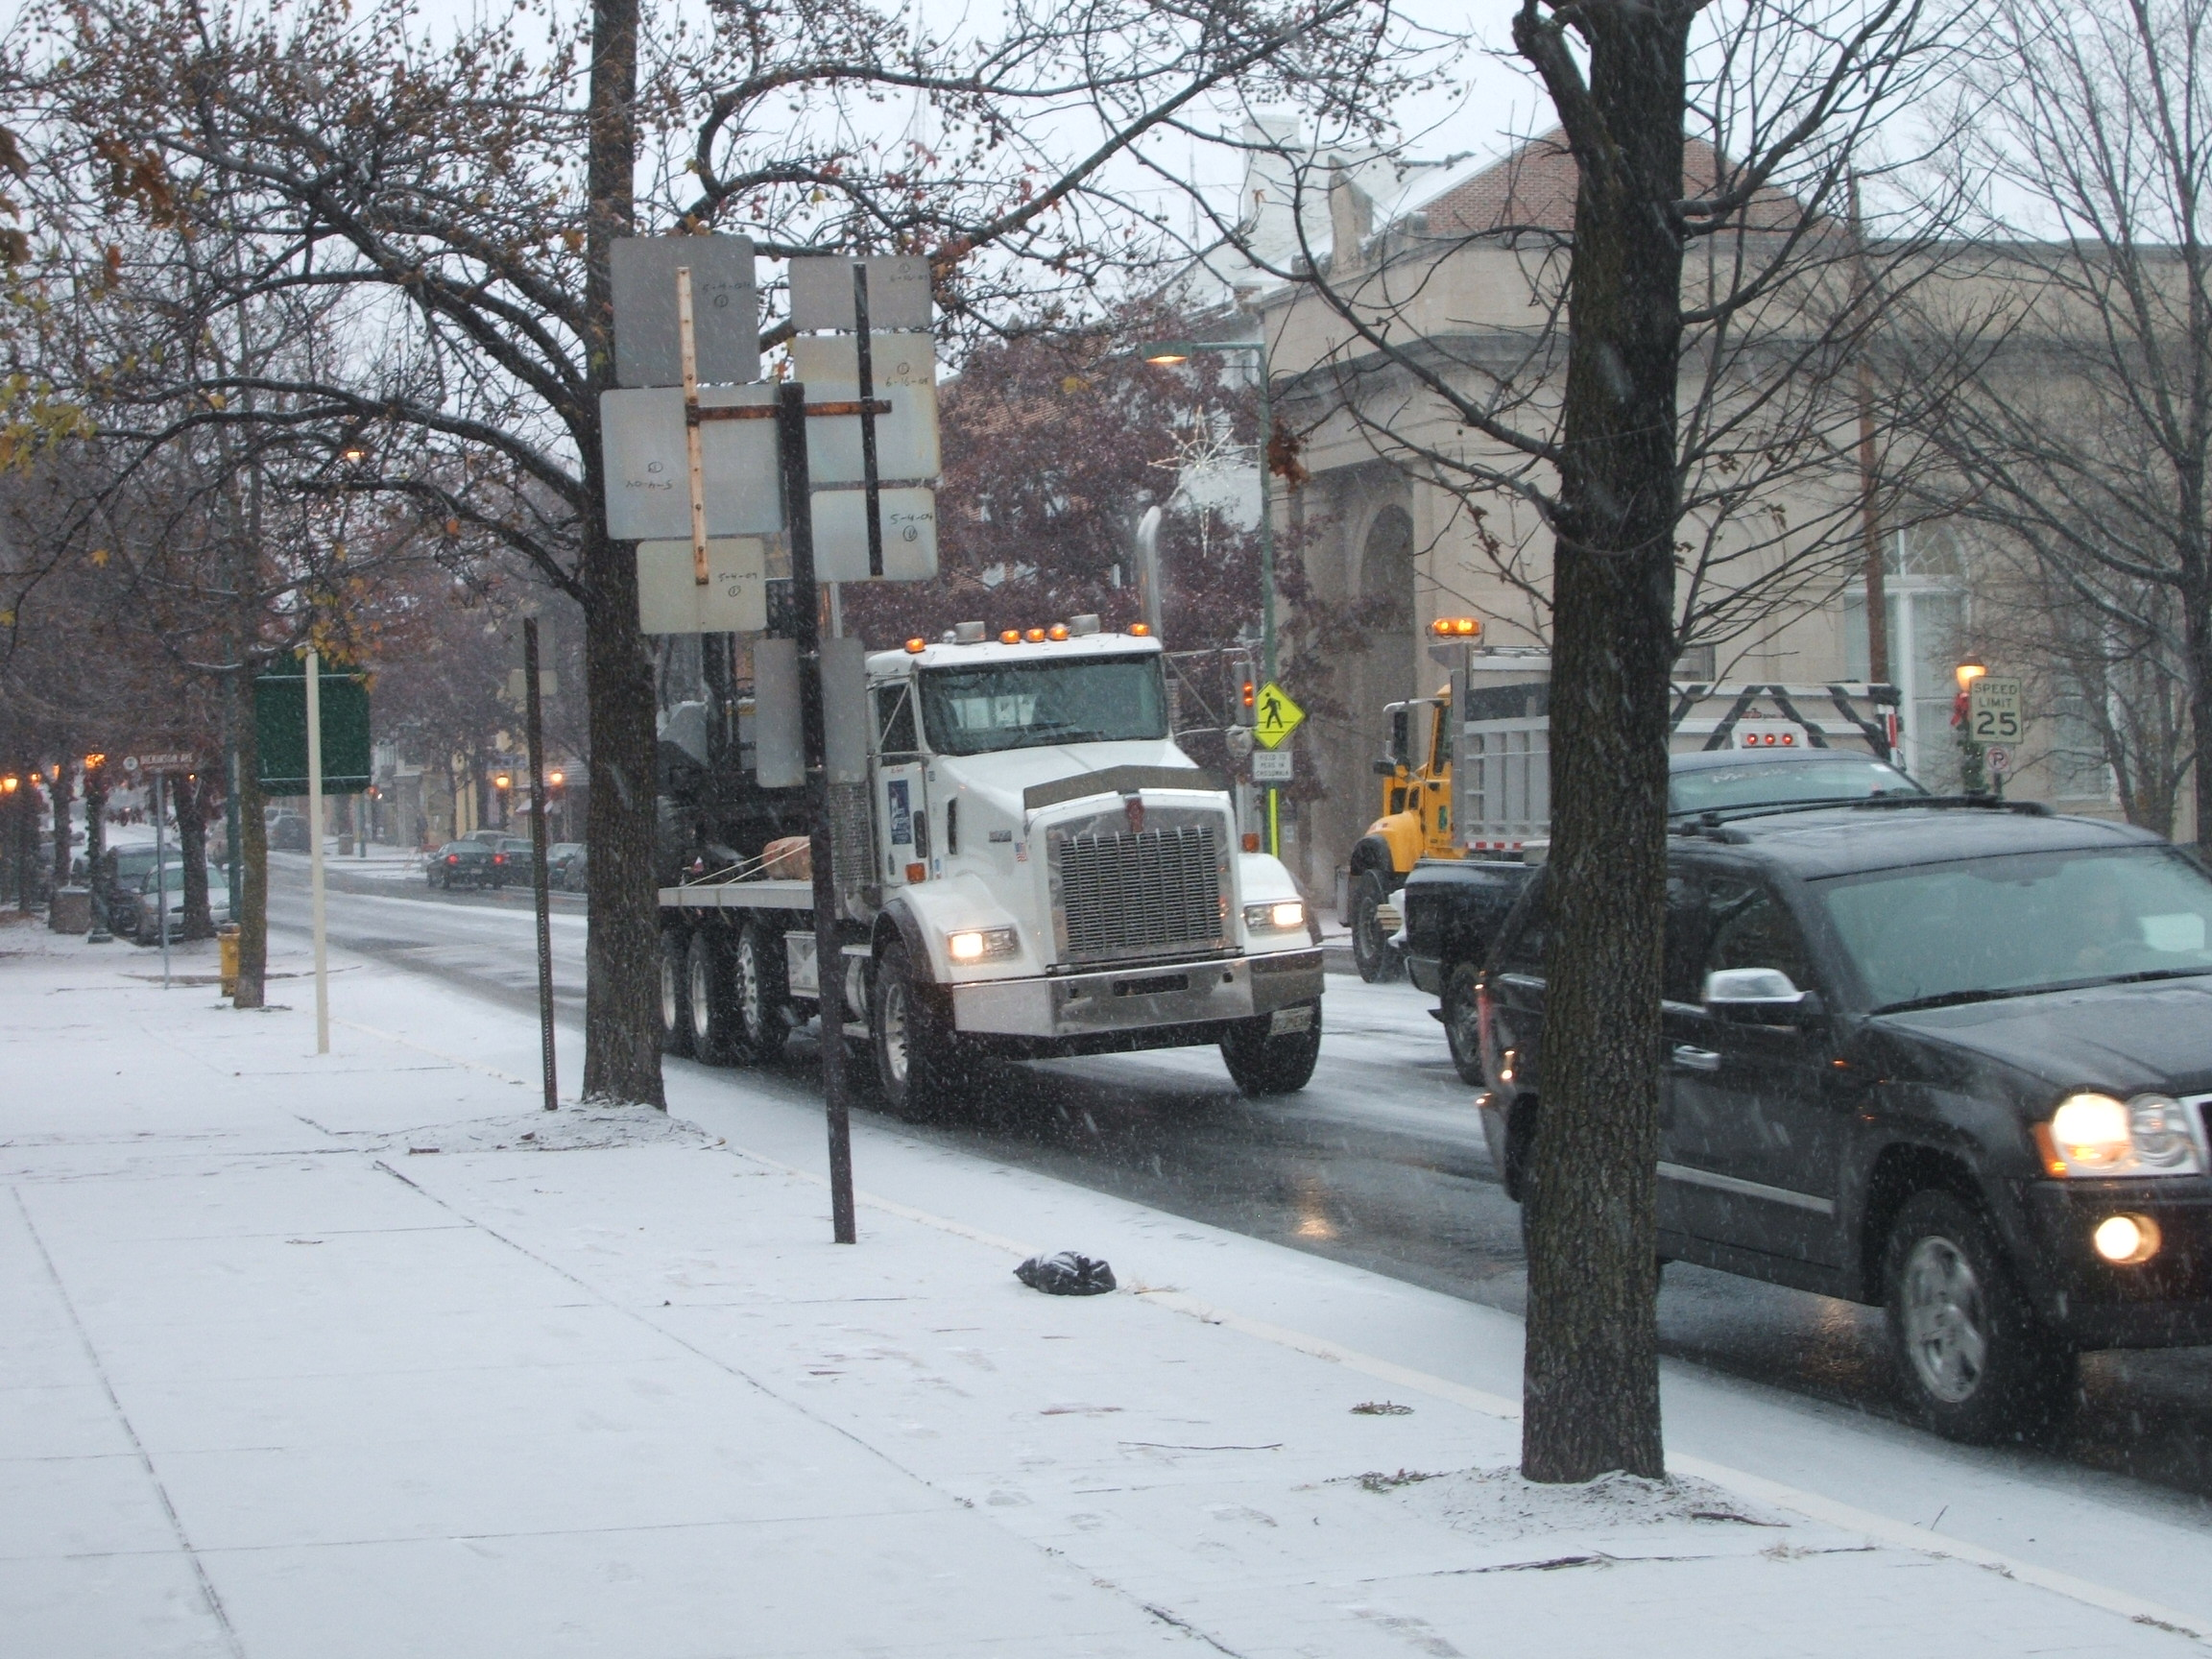 Trucks on Hanover Street, Carlisle, PA. December 5th, 2007. Photograph by Ellen Simon.